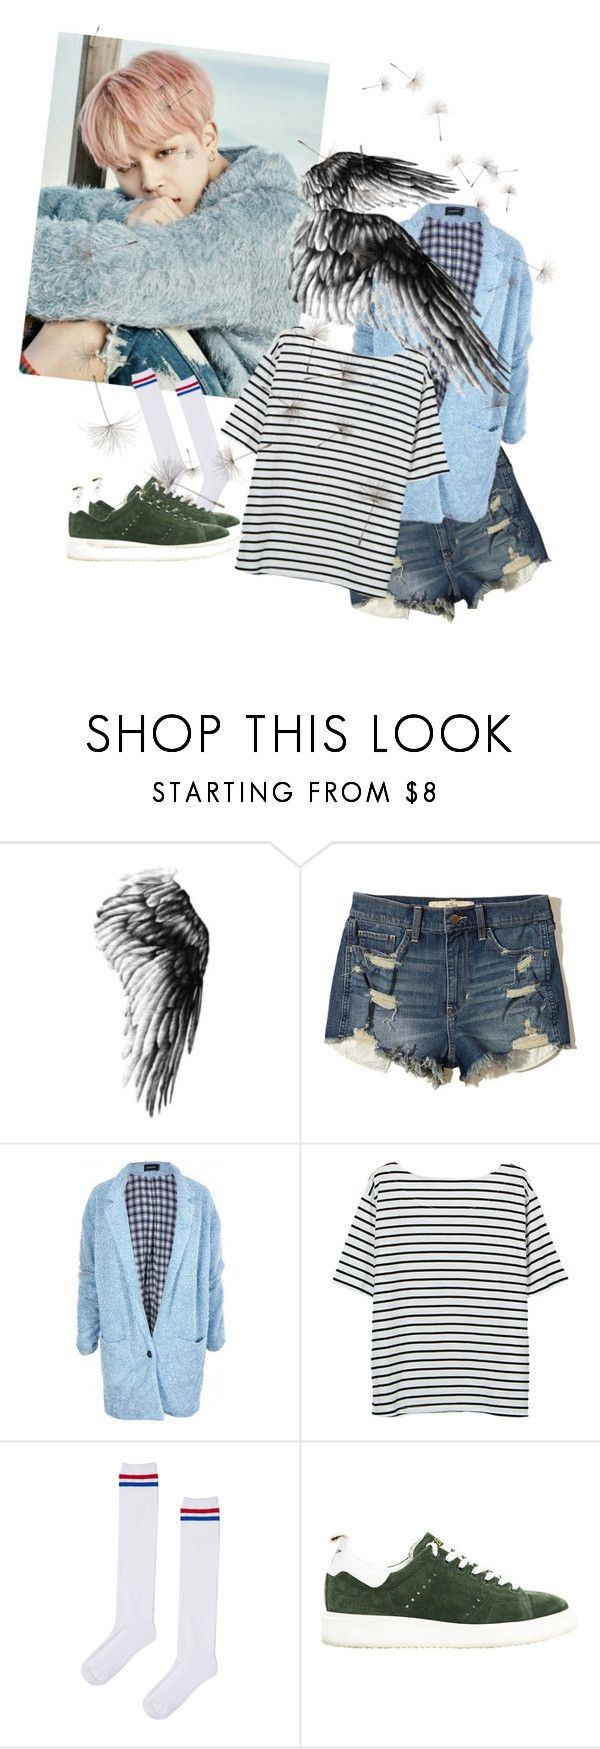 """""""Windy Spring Day"""" by bangtansstyle ❤ liked on Polyvore featuring Hollister Co., MINKPINK, Topshop and Golden Goose"""